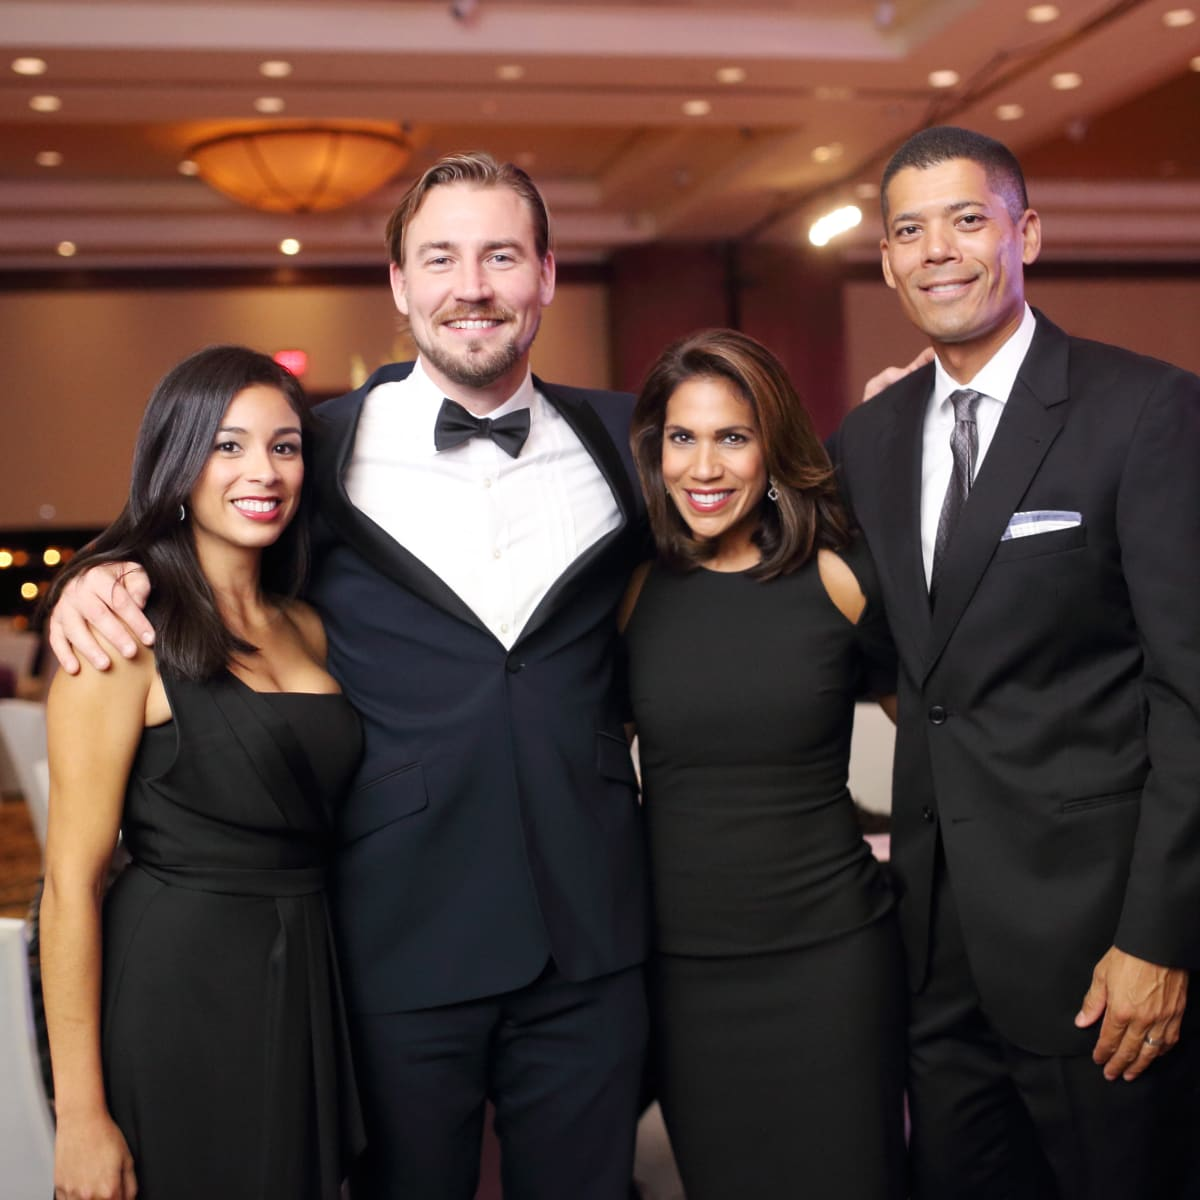 Big Brothers Big Sisters gala 2015 Ingrid Velasco, Nick Hughes, Rachel McNeill and Dr. Wayne Franklin